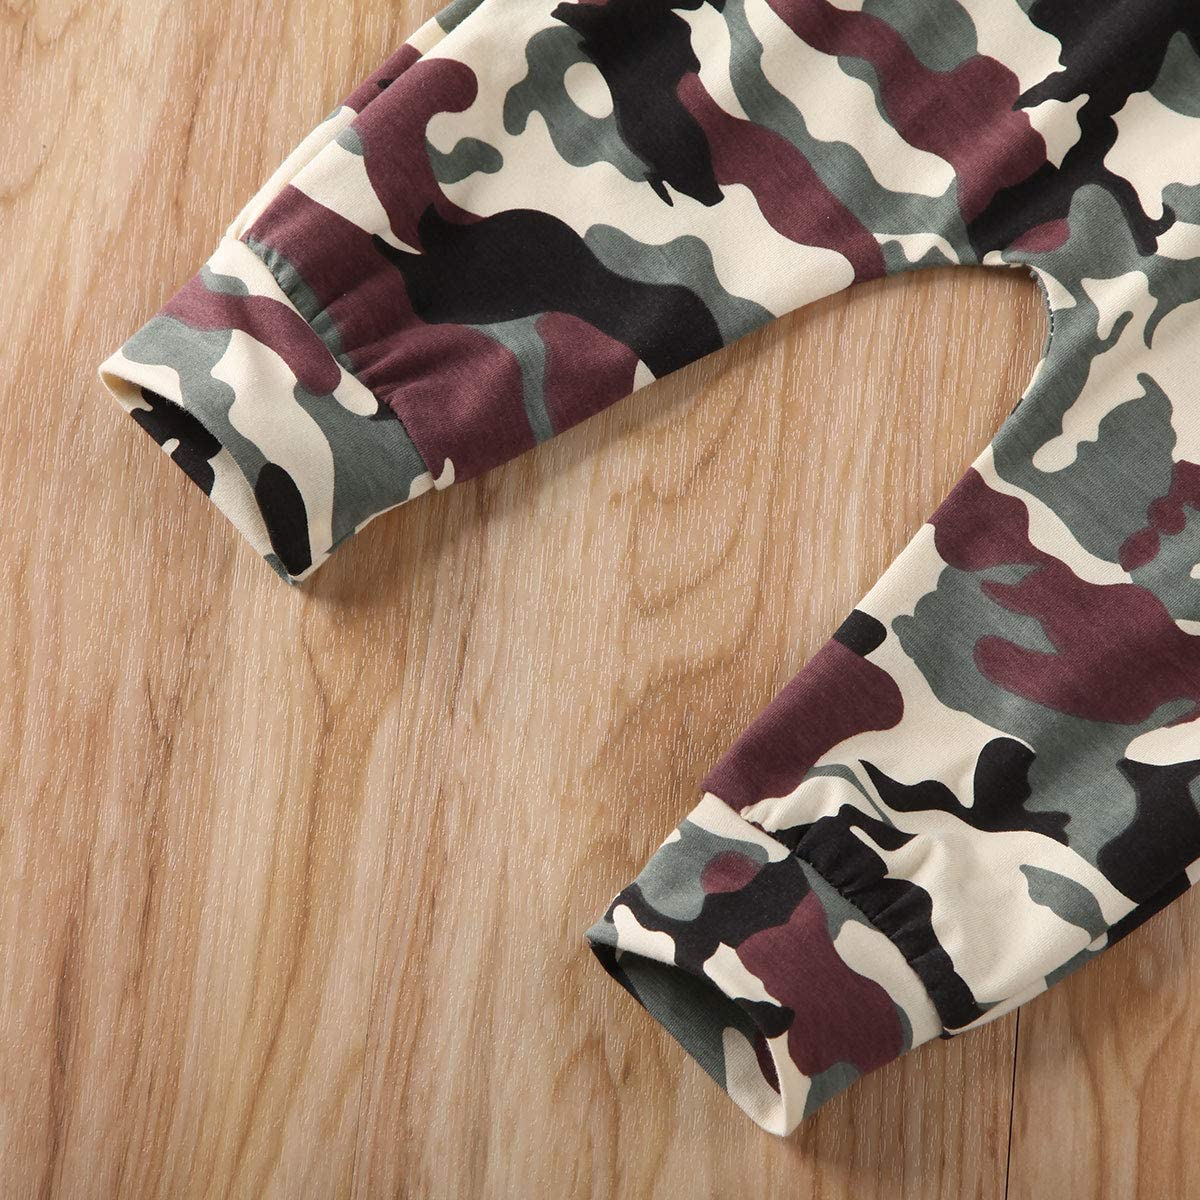 Toddler Baby Boys Camouflage Outfits 2 Pcs Black Long Sleeve Letter Shirt Top+Long Legging Pants Casual Clothes 0-3Y